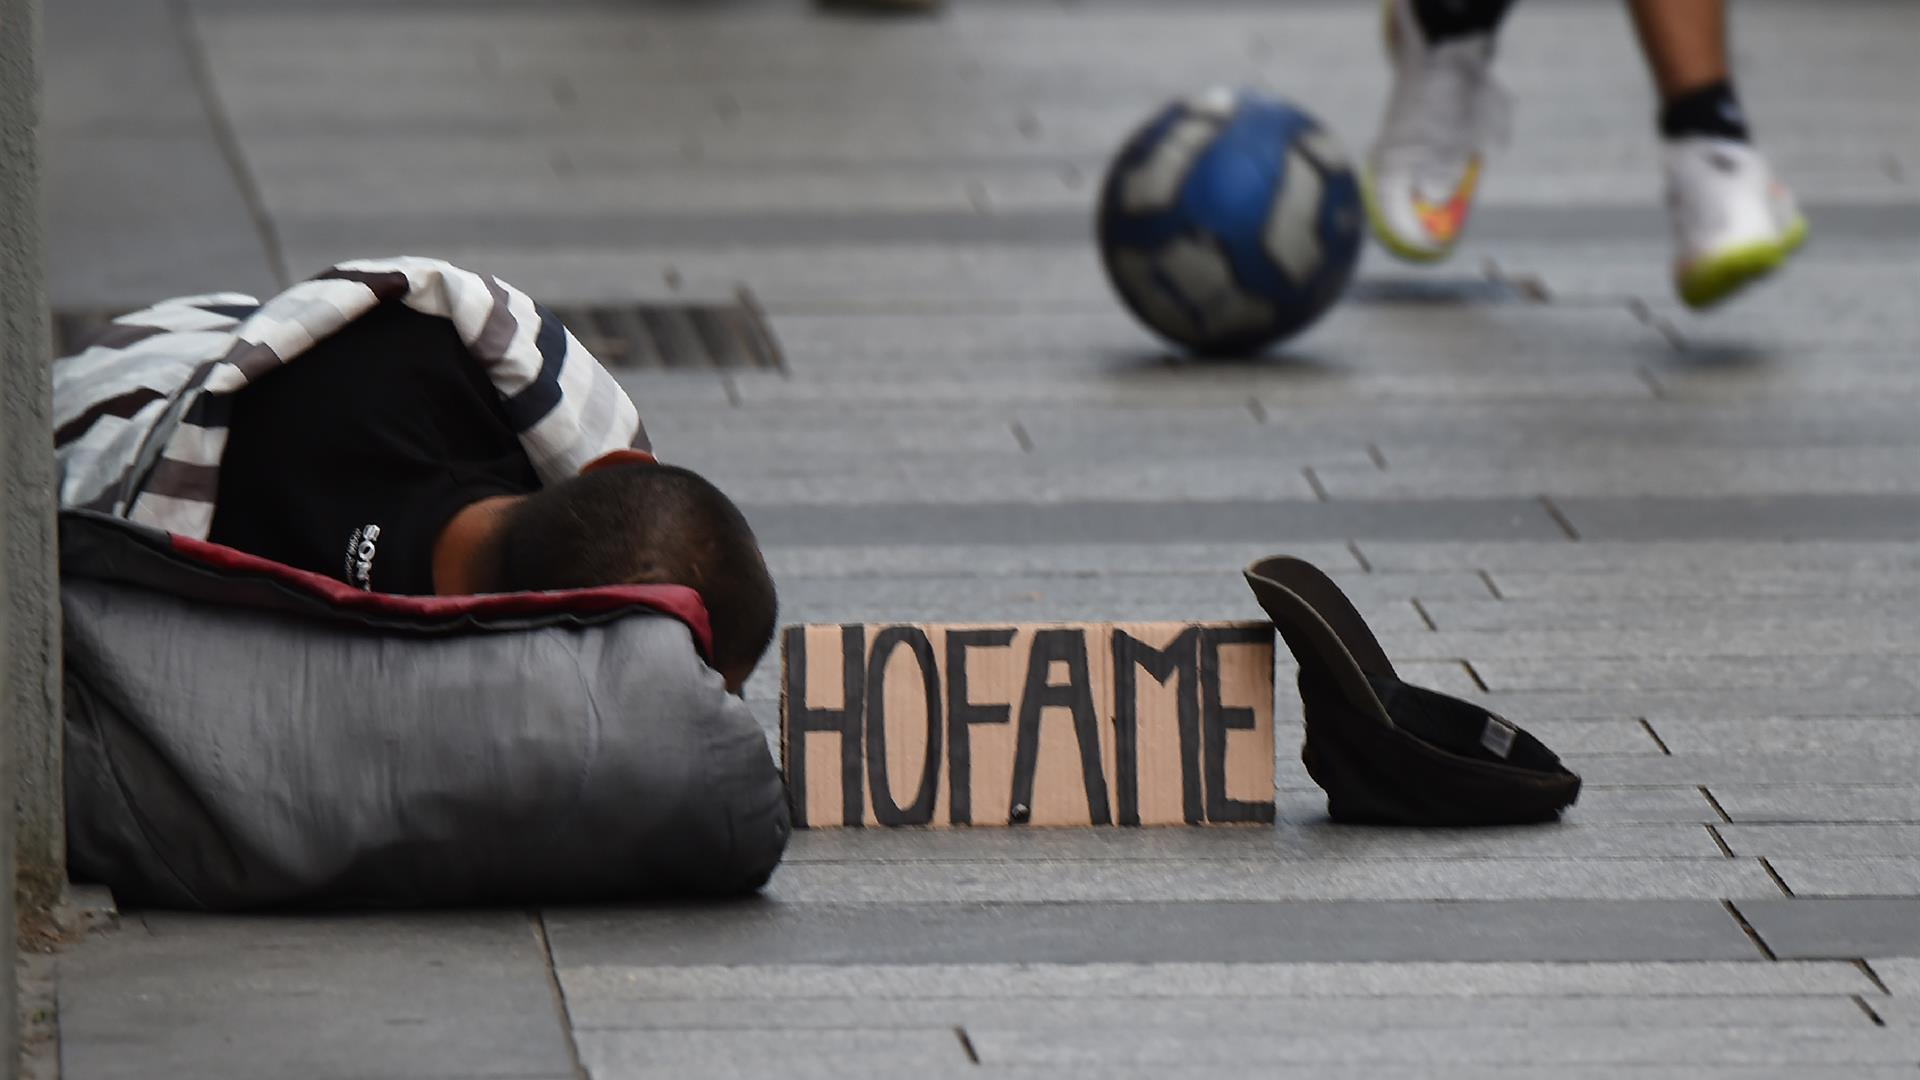 Povertà GIUSEPPE CACACE:AFP:Getty Images)